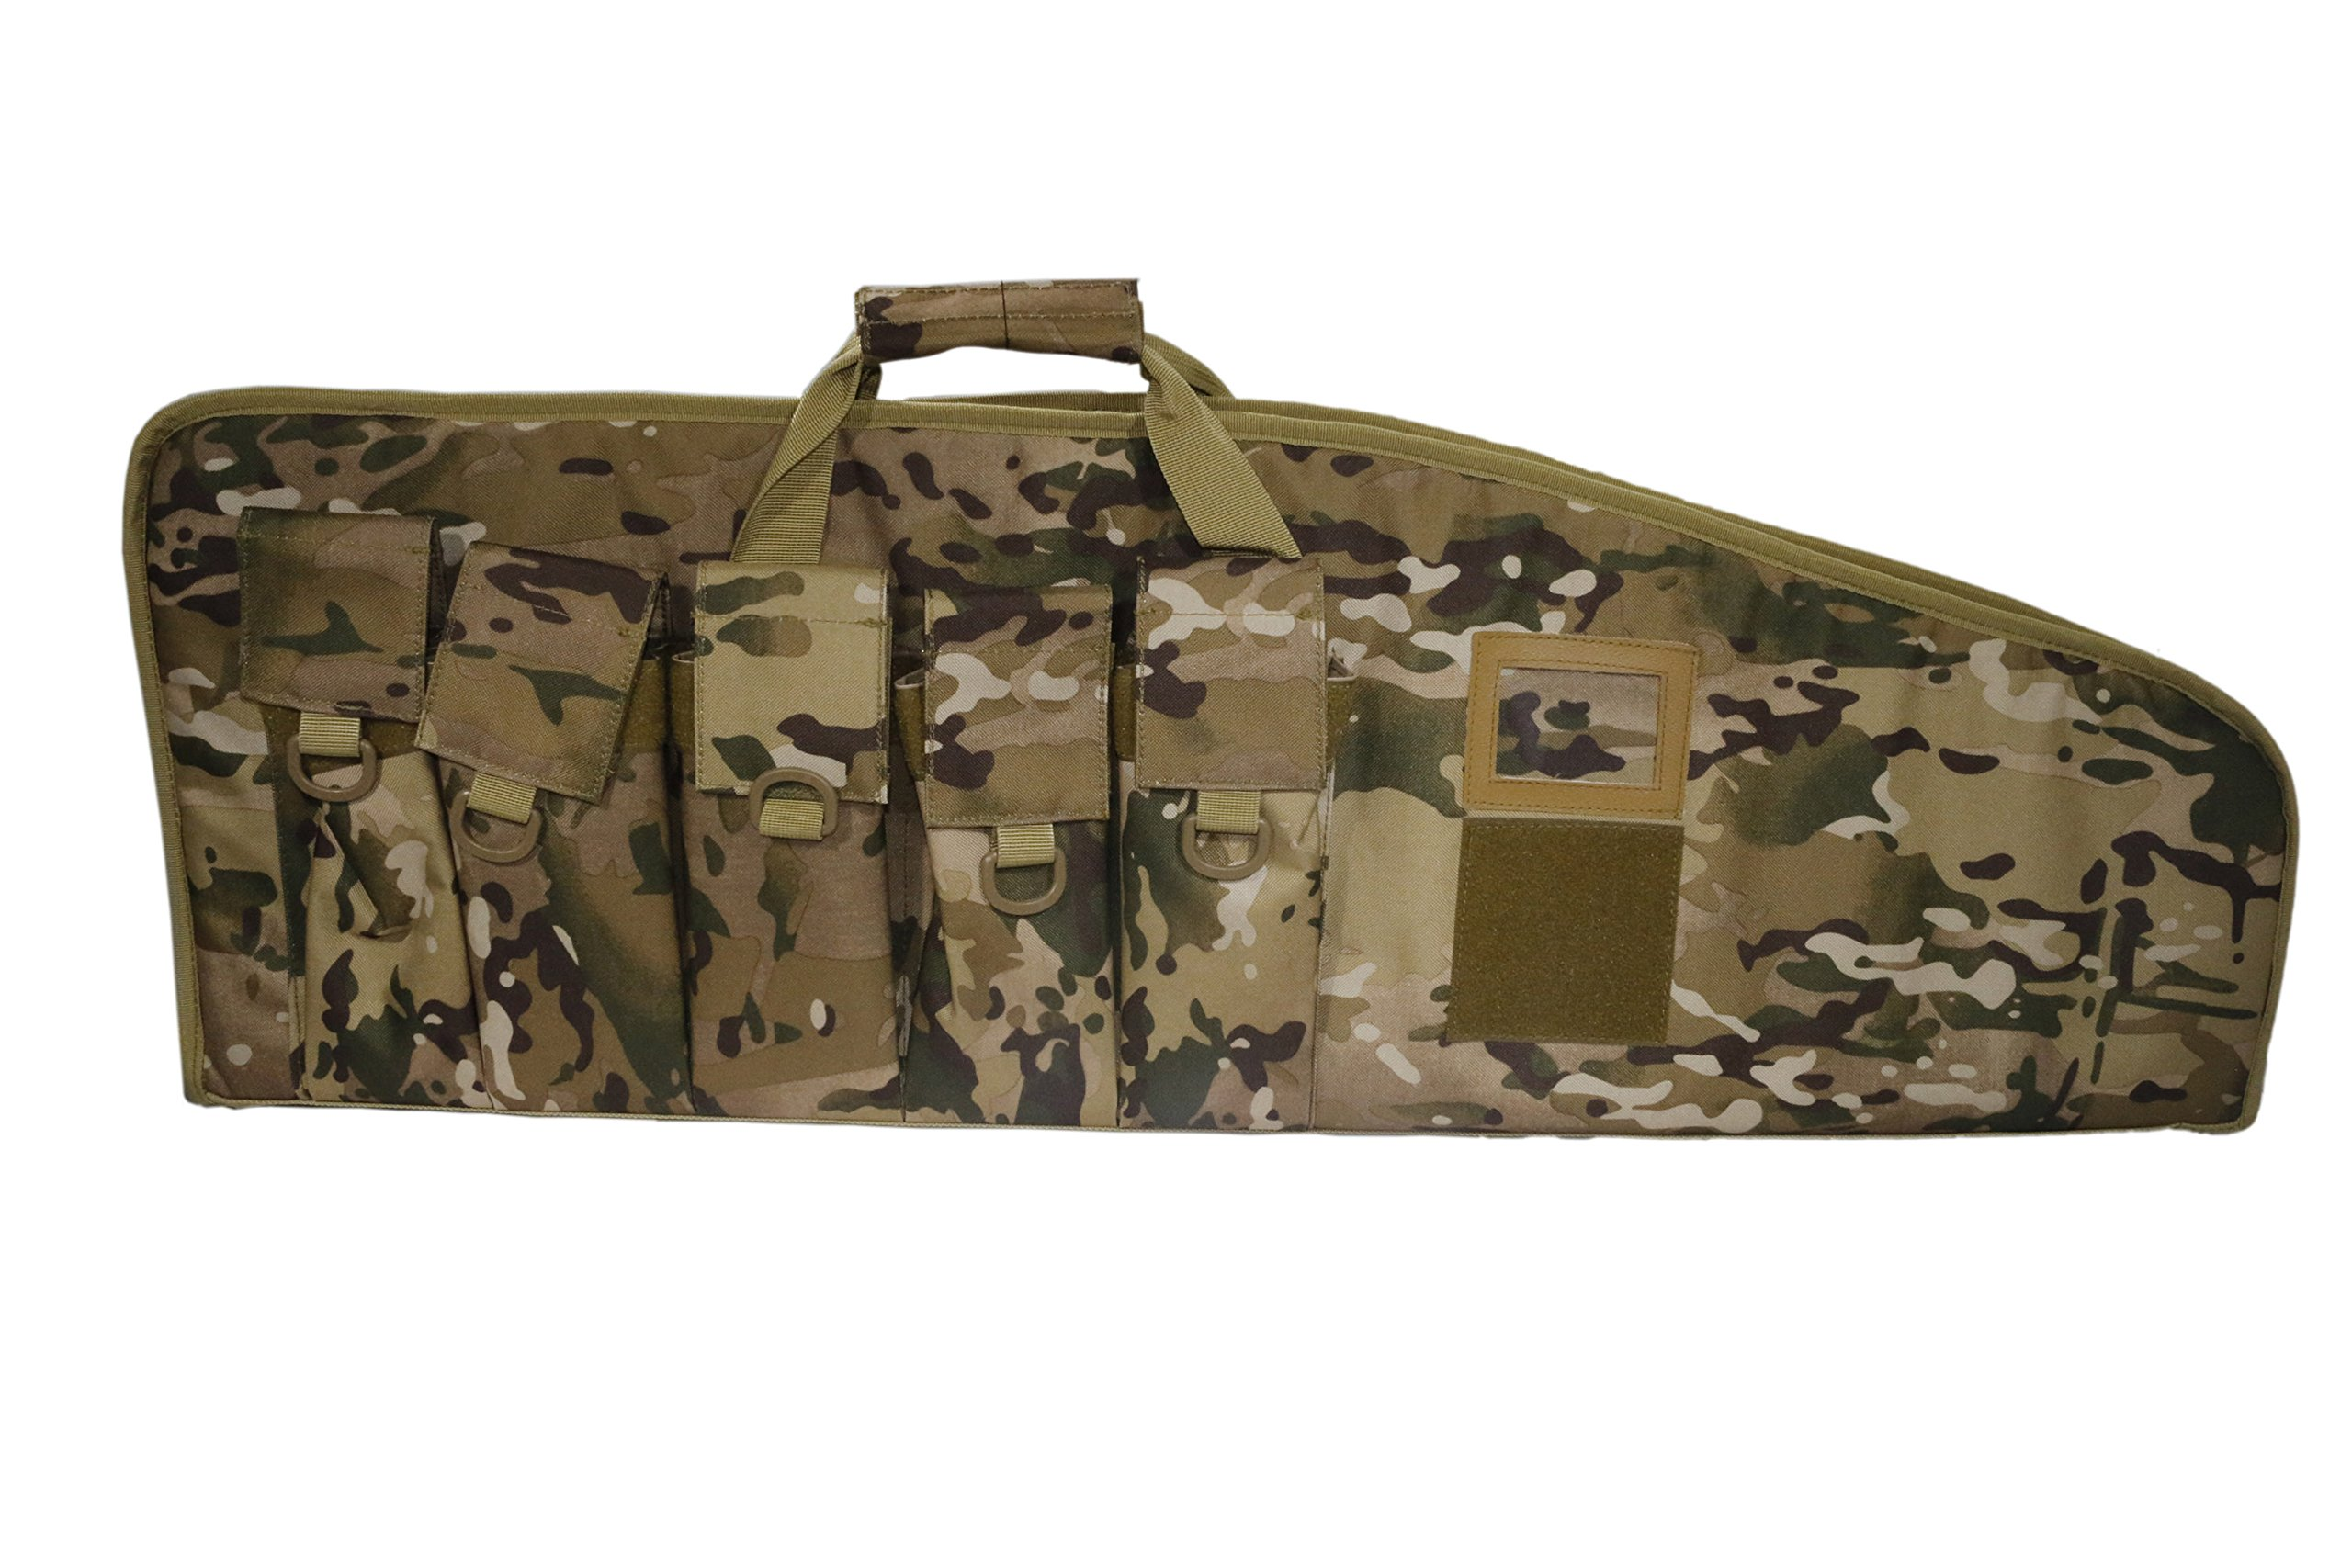 ARMYCAMOUSA Rifle Bag Outdoor Tactical Carbine Cases Water dust Resistant Long Gun Case Bag with Five Magazine Pouches for Hunting Shooting Range Sports Storage and Transport (42'' Multicam) by ARMYCAMOUSA